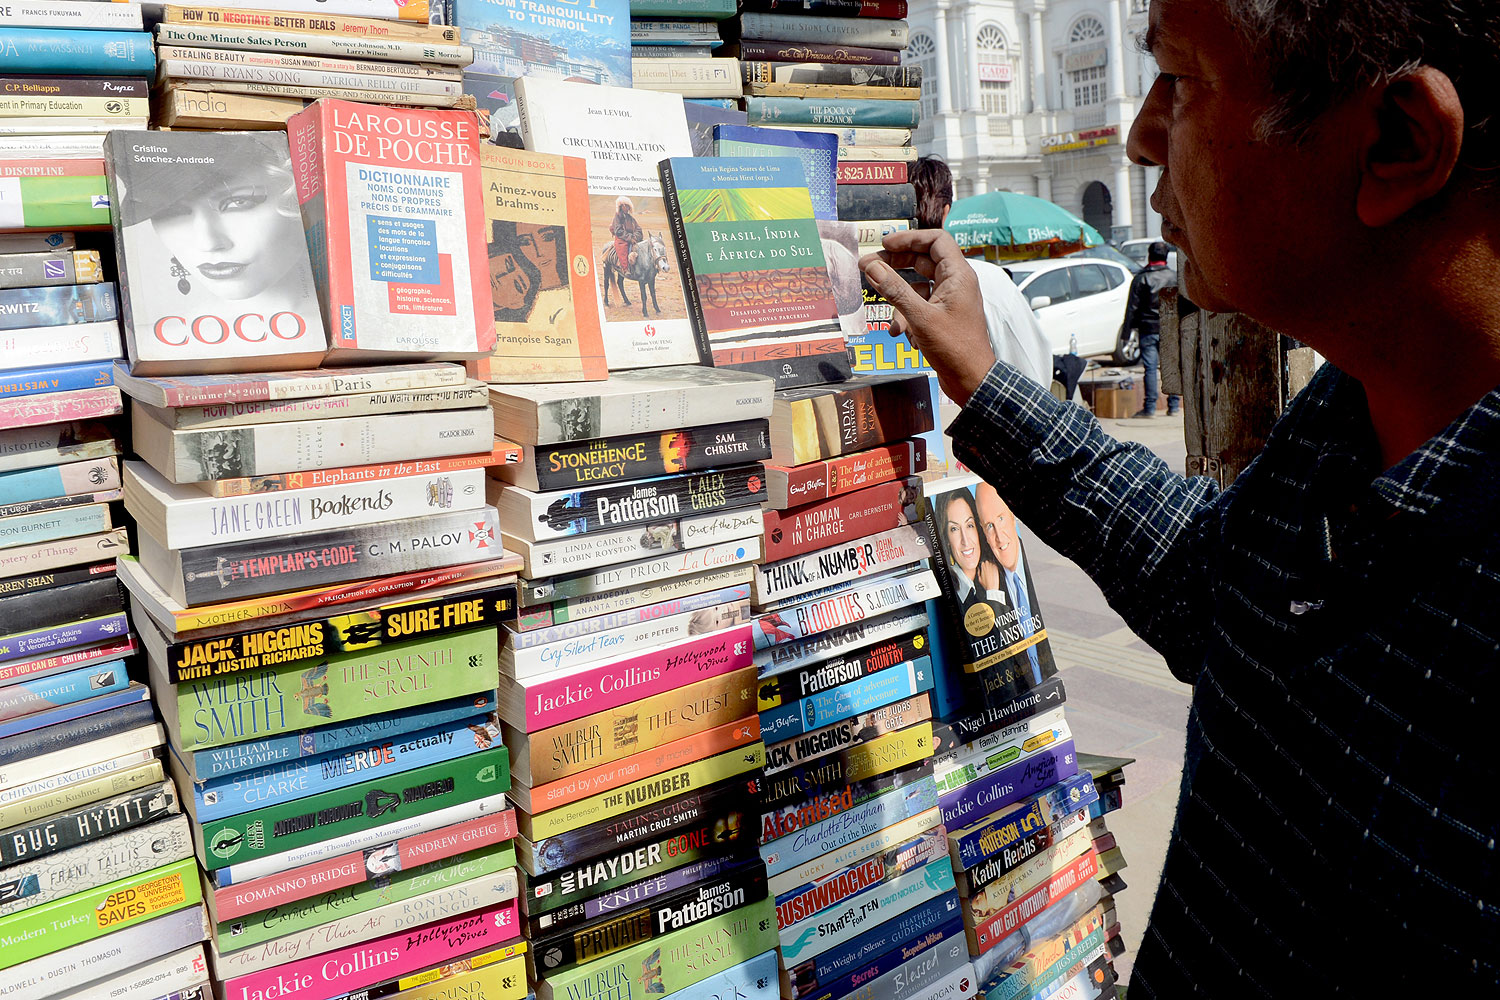 The decision by Penguin India to recall and pulp a scholarly work has many concerned over freedom of expression in India